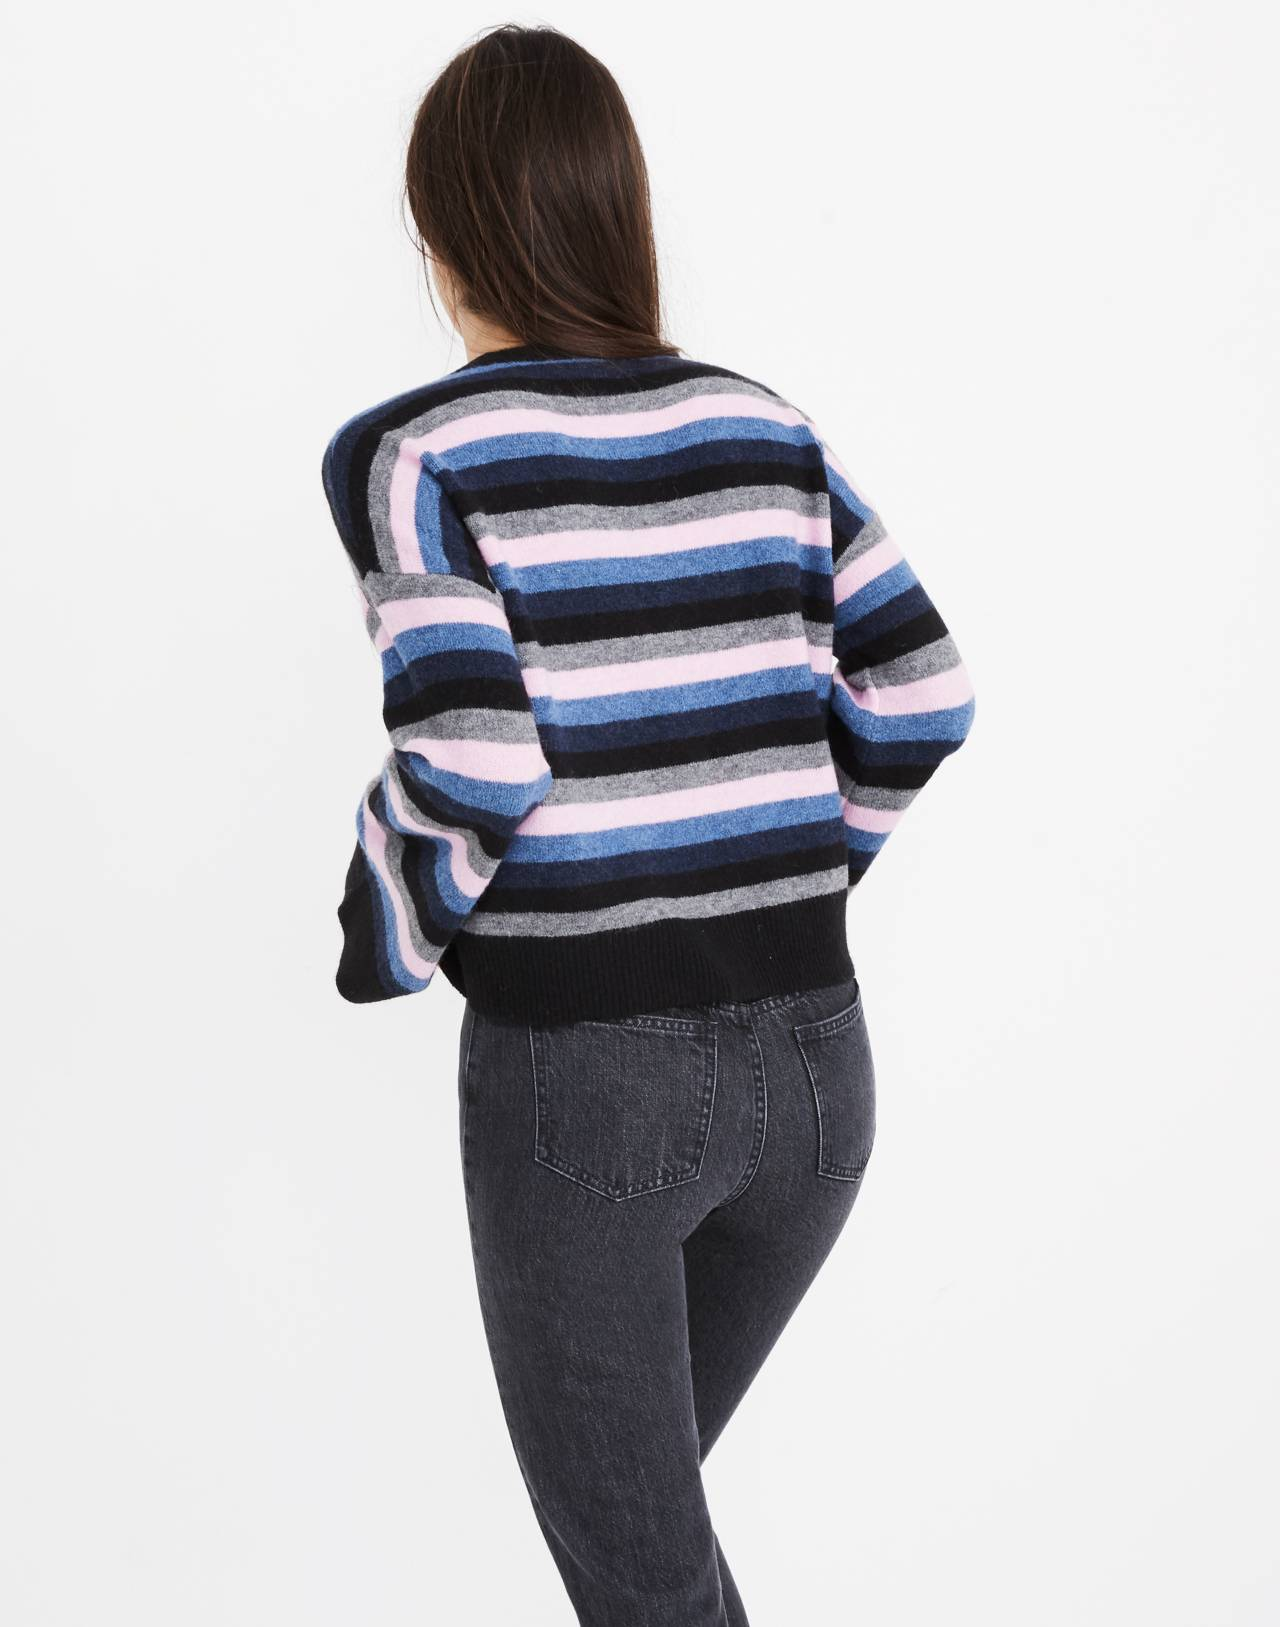 Cardiff Striped Crewneck Sweater in Coziest Yarn in true black image 3